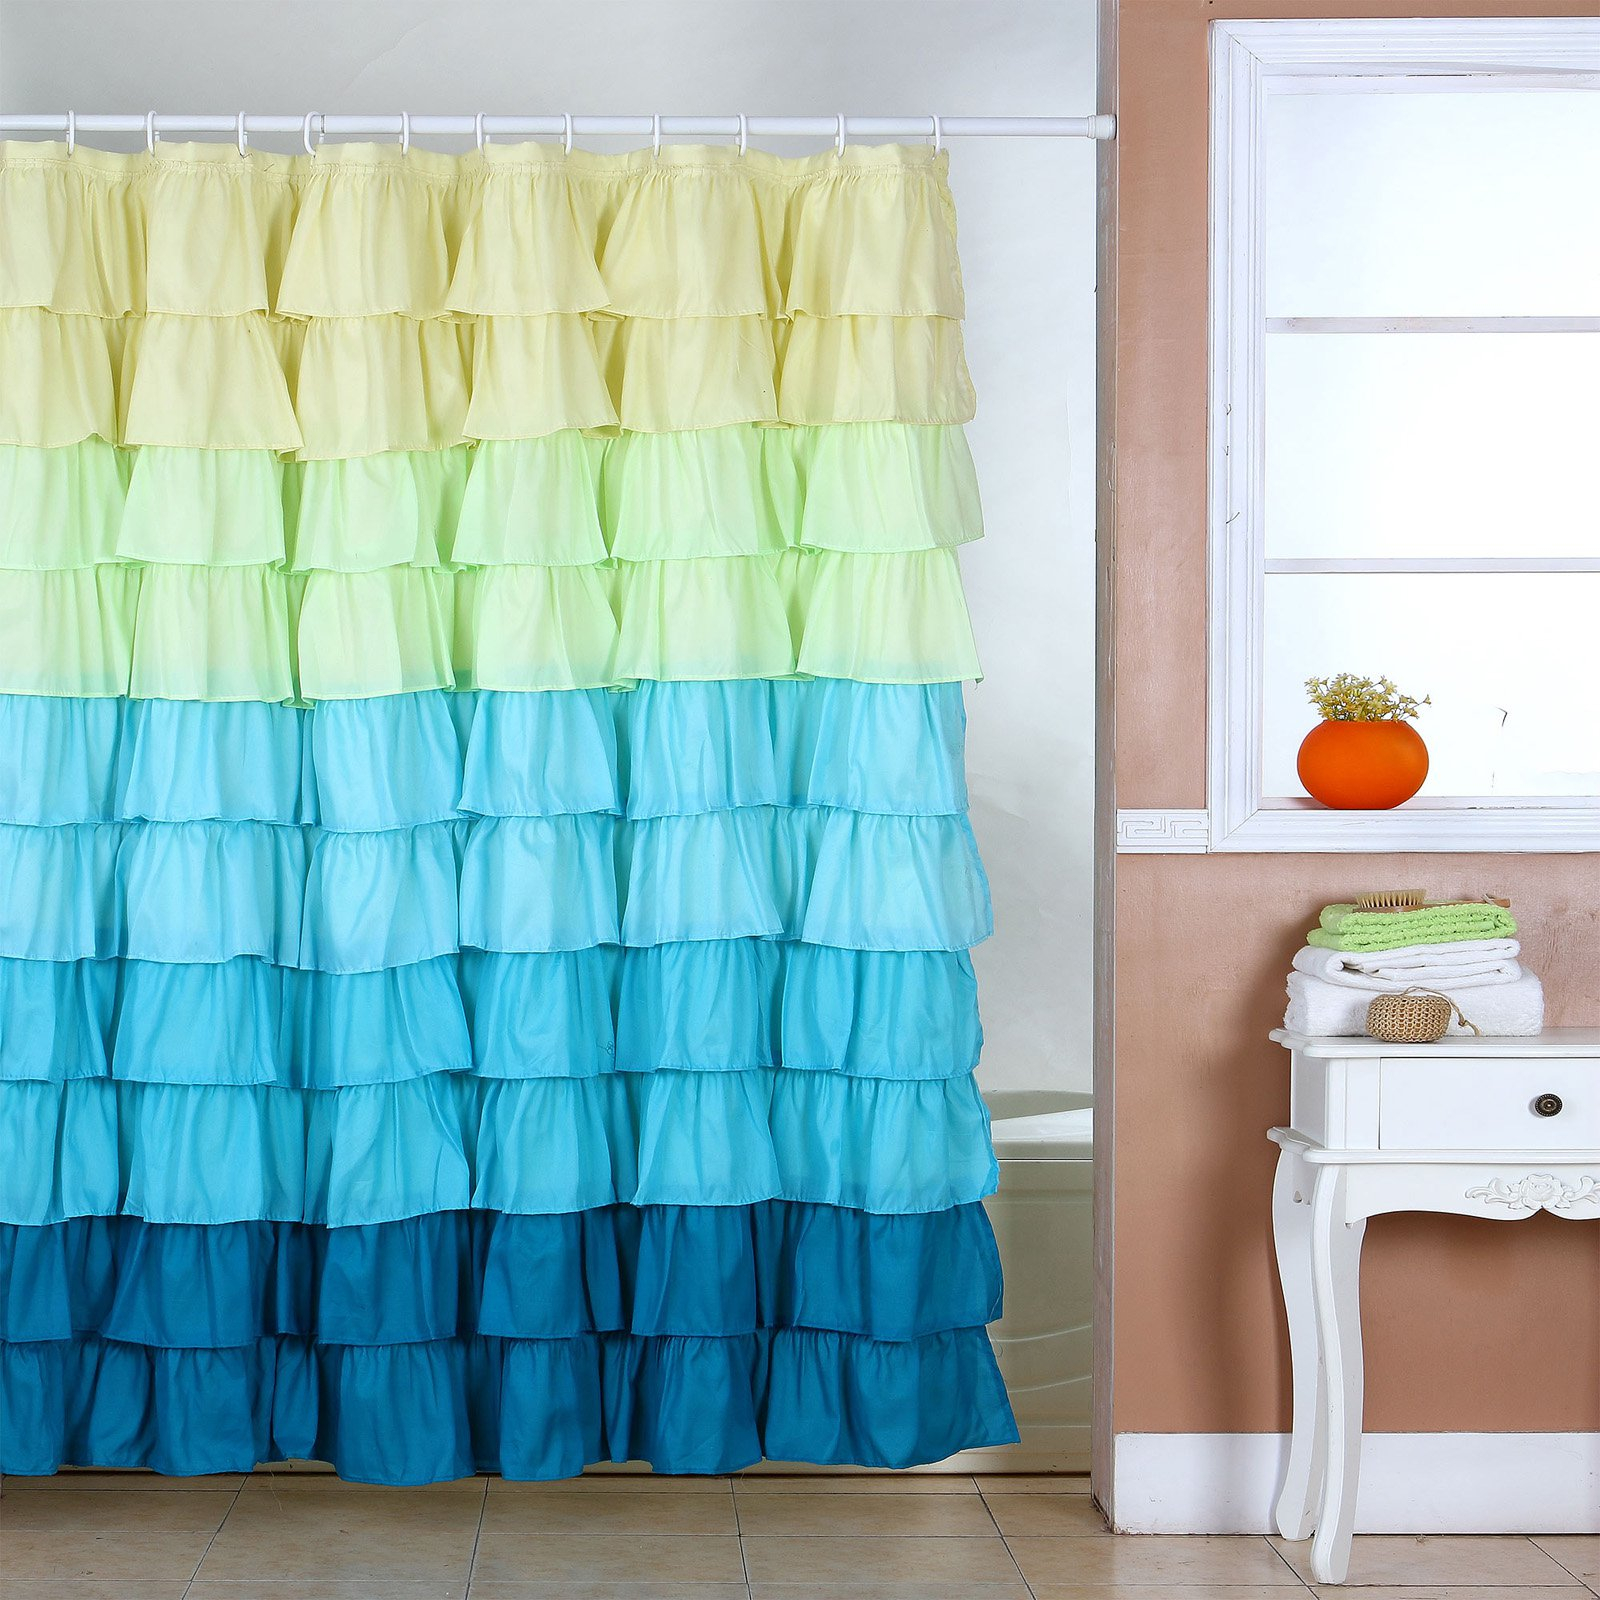 Lavish Home Spring Ruffle Shower Curtain Walmart within size 1600 X 1600